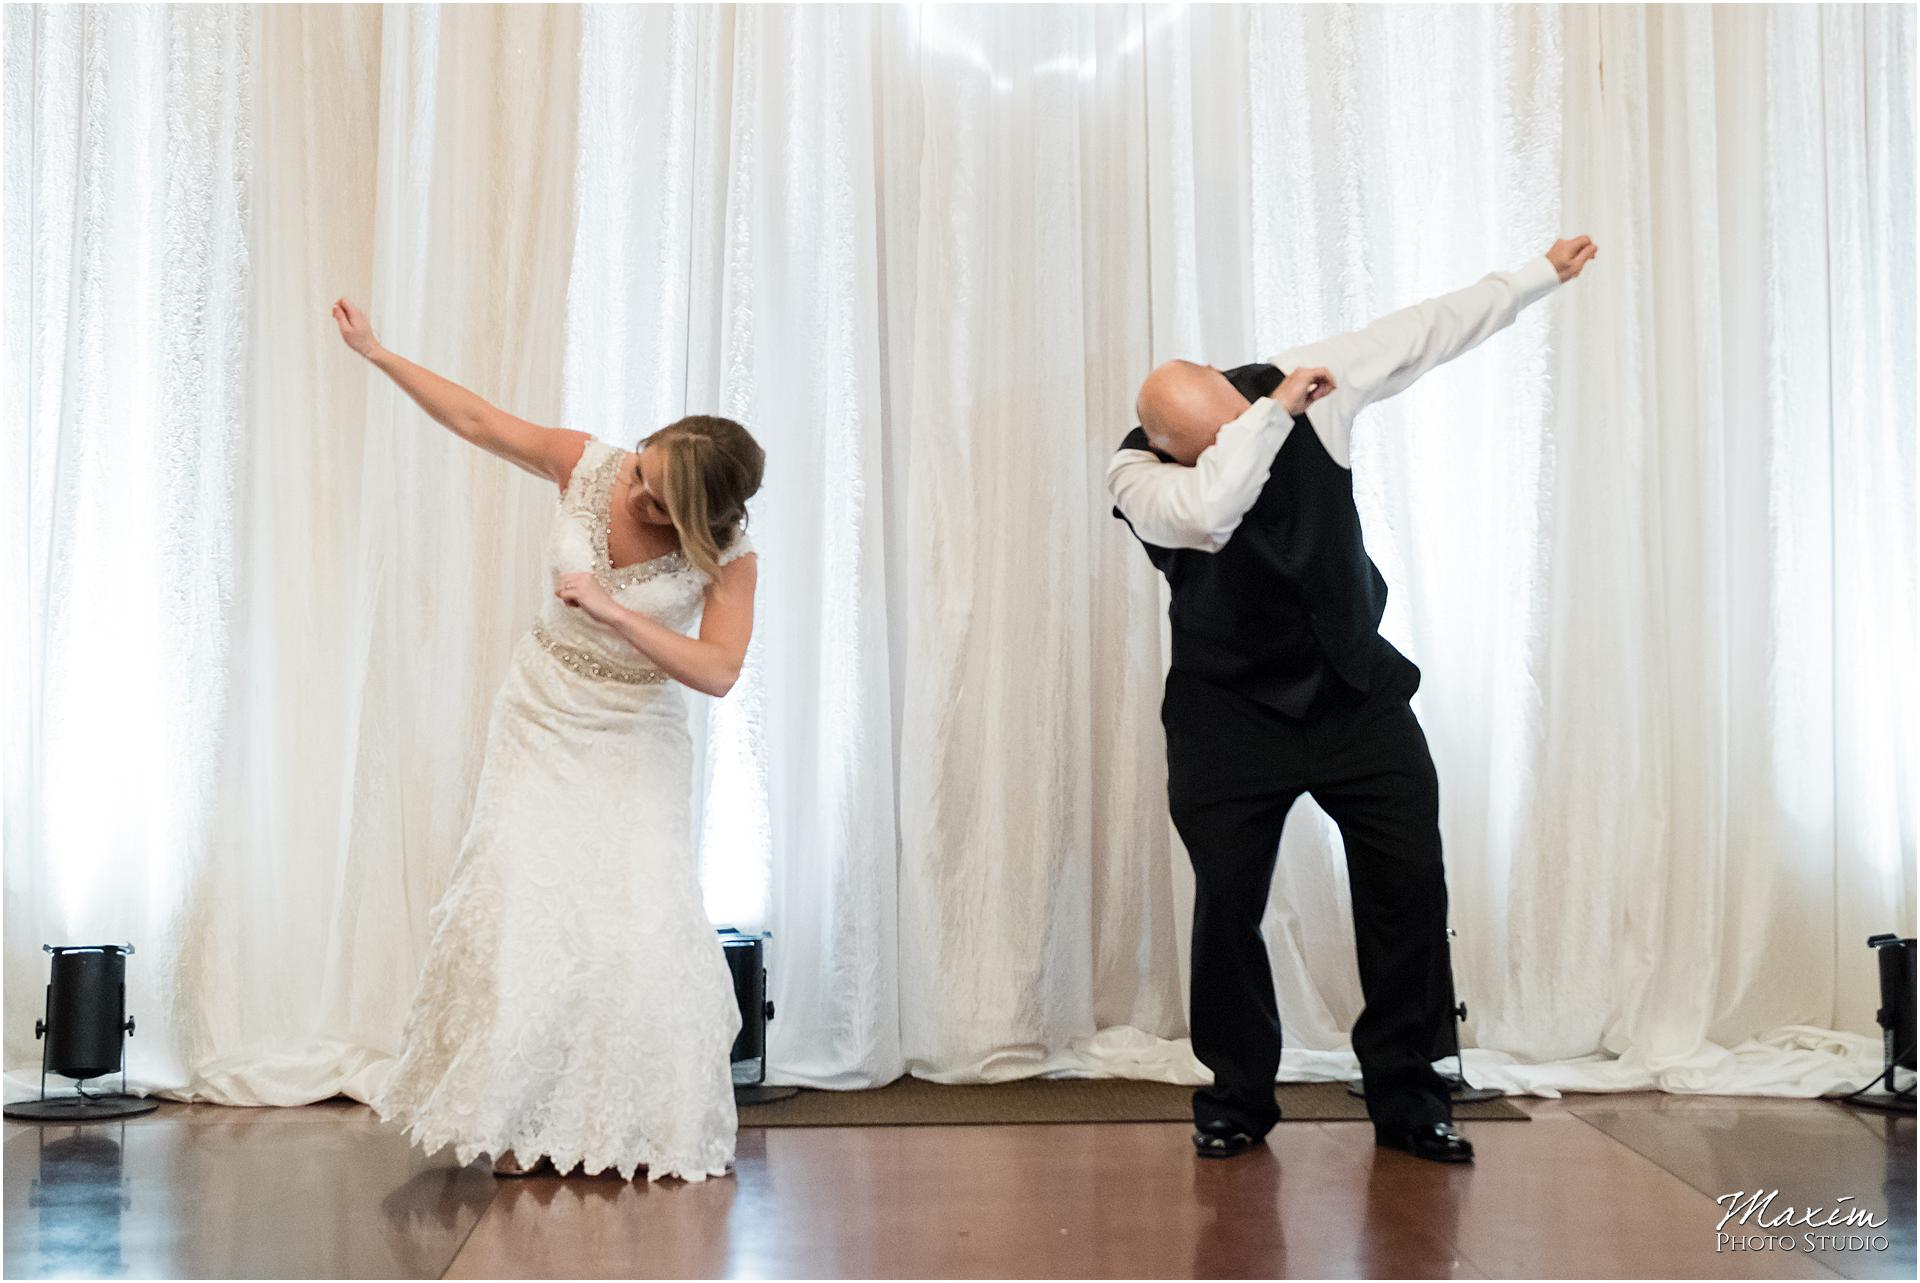 Canopy Creek Dayton Ohio Wedding Reception Father Daughter Dab Dance